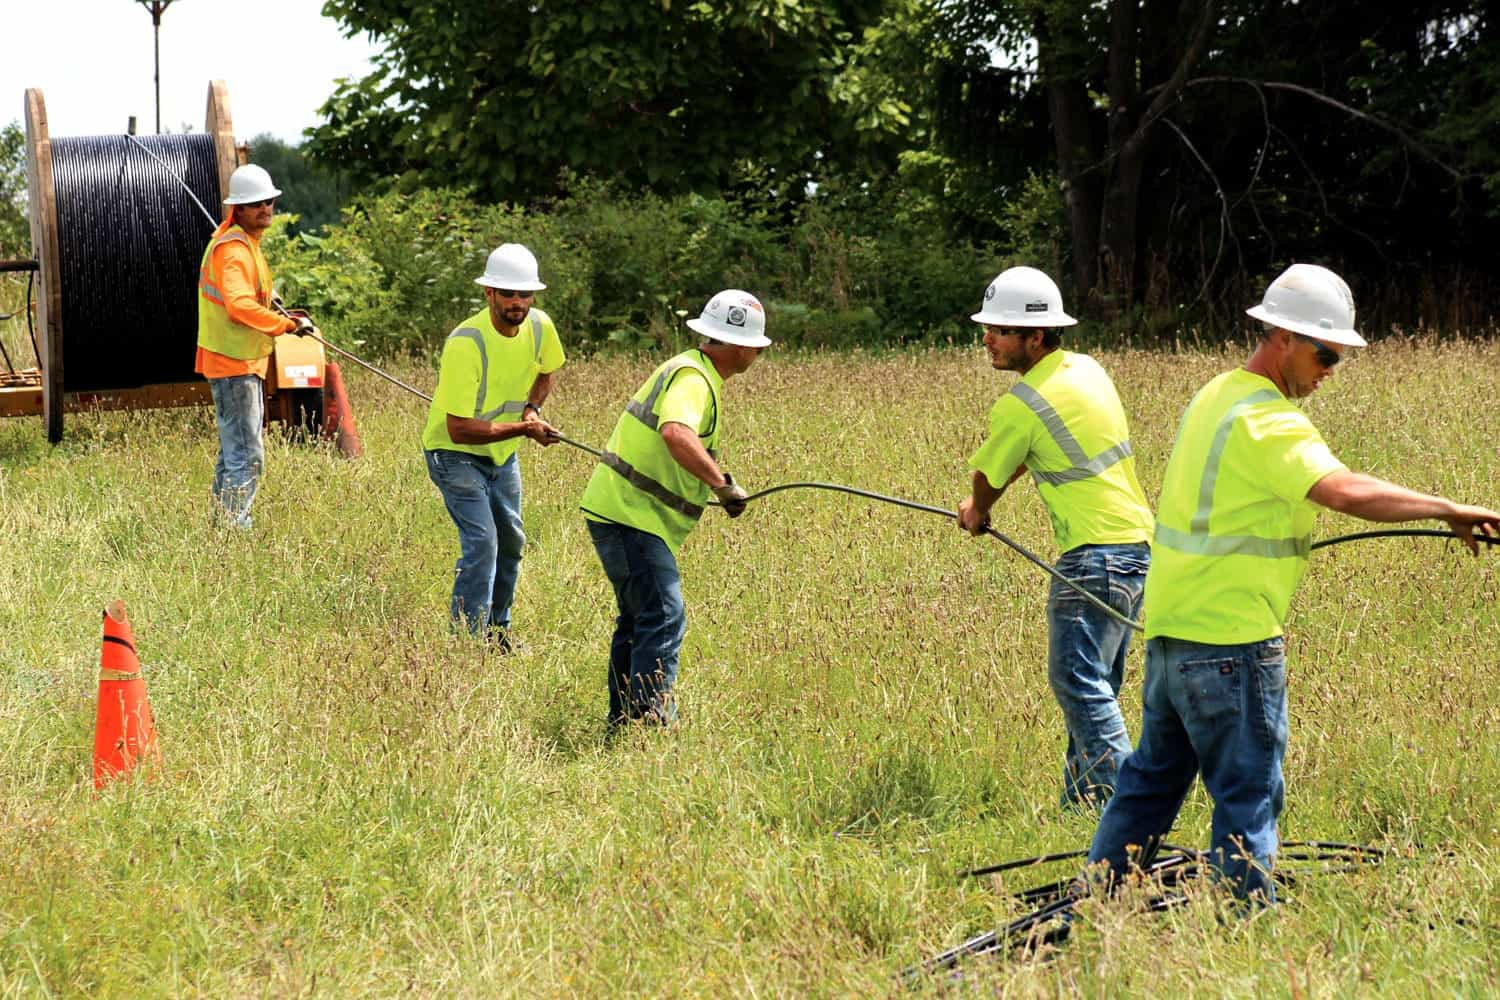 Members of a Midwest Energy Cooperative contract crew pull fiber cable in Schoolcraft, Michigan. Midwest is one provider that is developing hybrid systems the bring fixed-wireless access into the equation. Craig Settles says the combination can be a good option for getting rural communities online faster and getting community-focused networks off the ground. Photo courtesy Midwest Energy Cooperative.